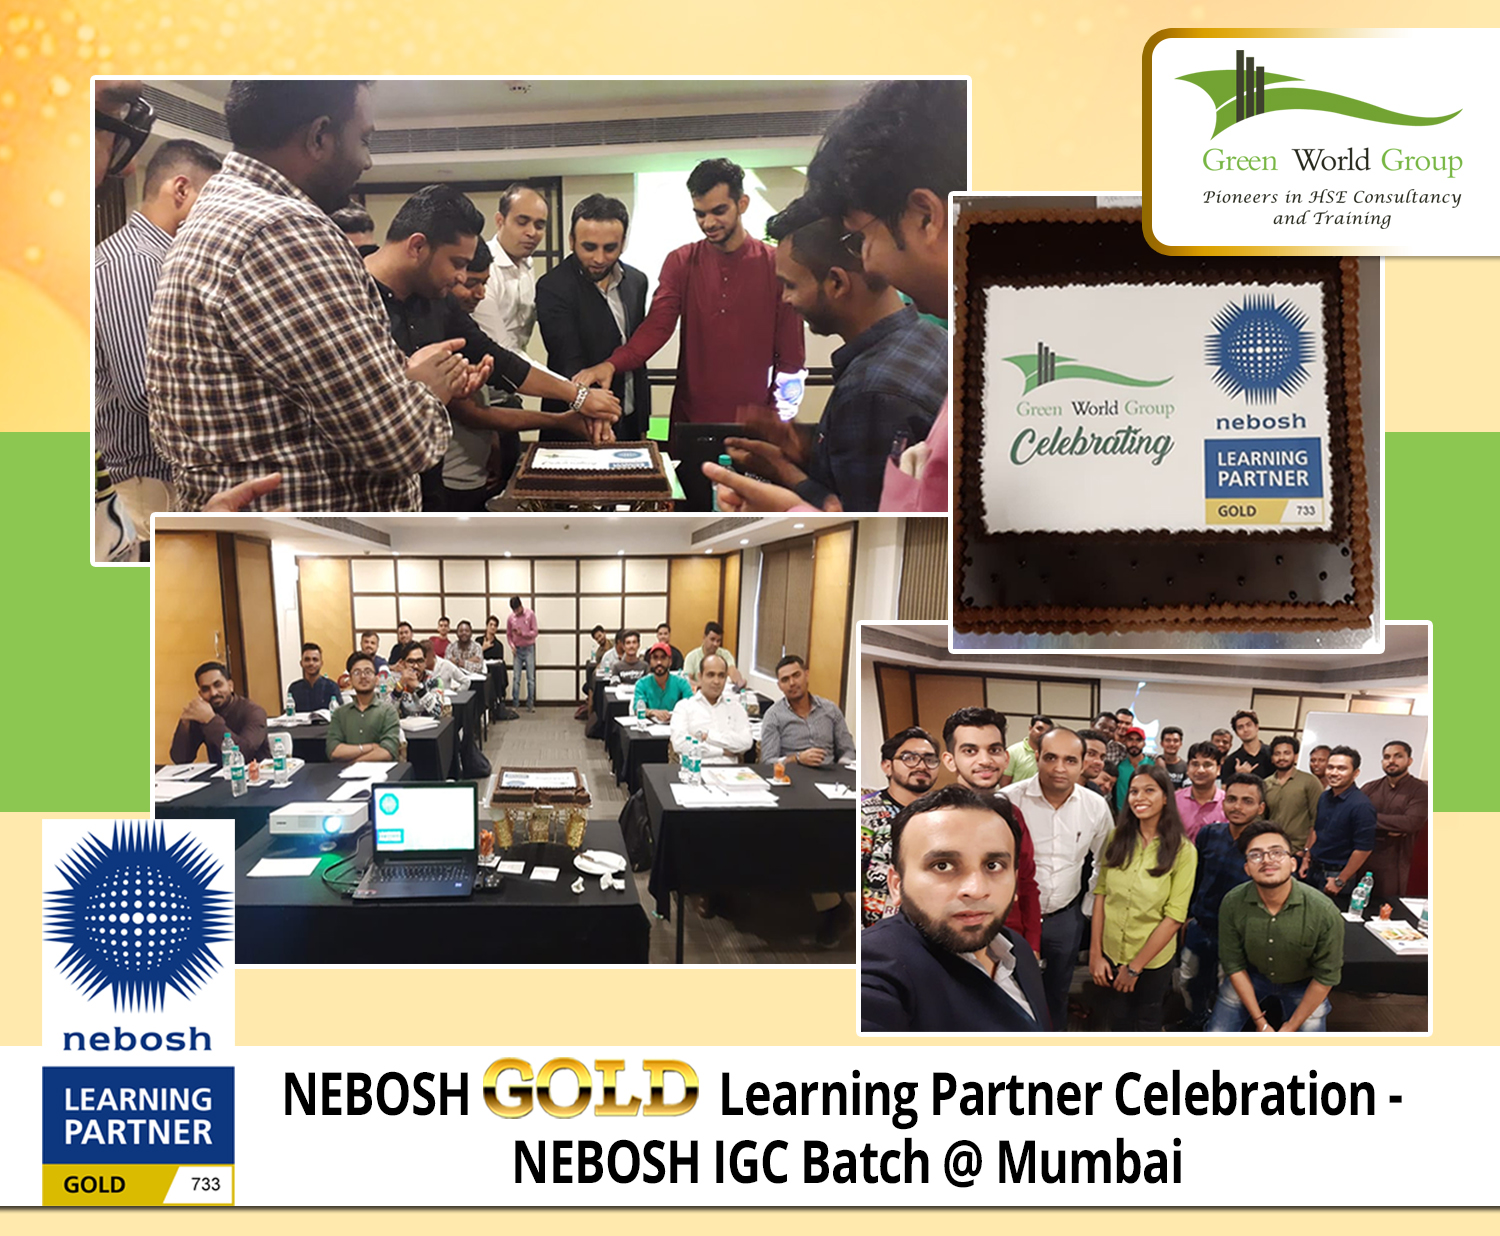 NEBOSH GOLD Learning Partner Celebration - Nebosh IGC Batch @ Mumbai